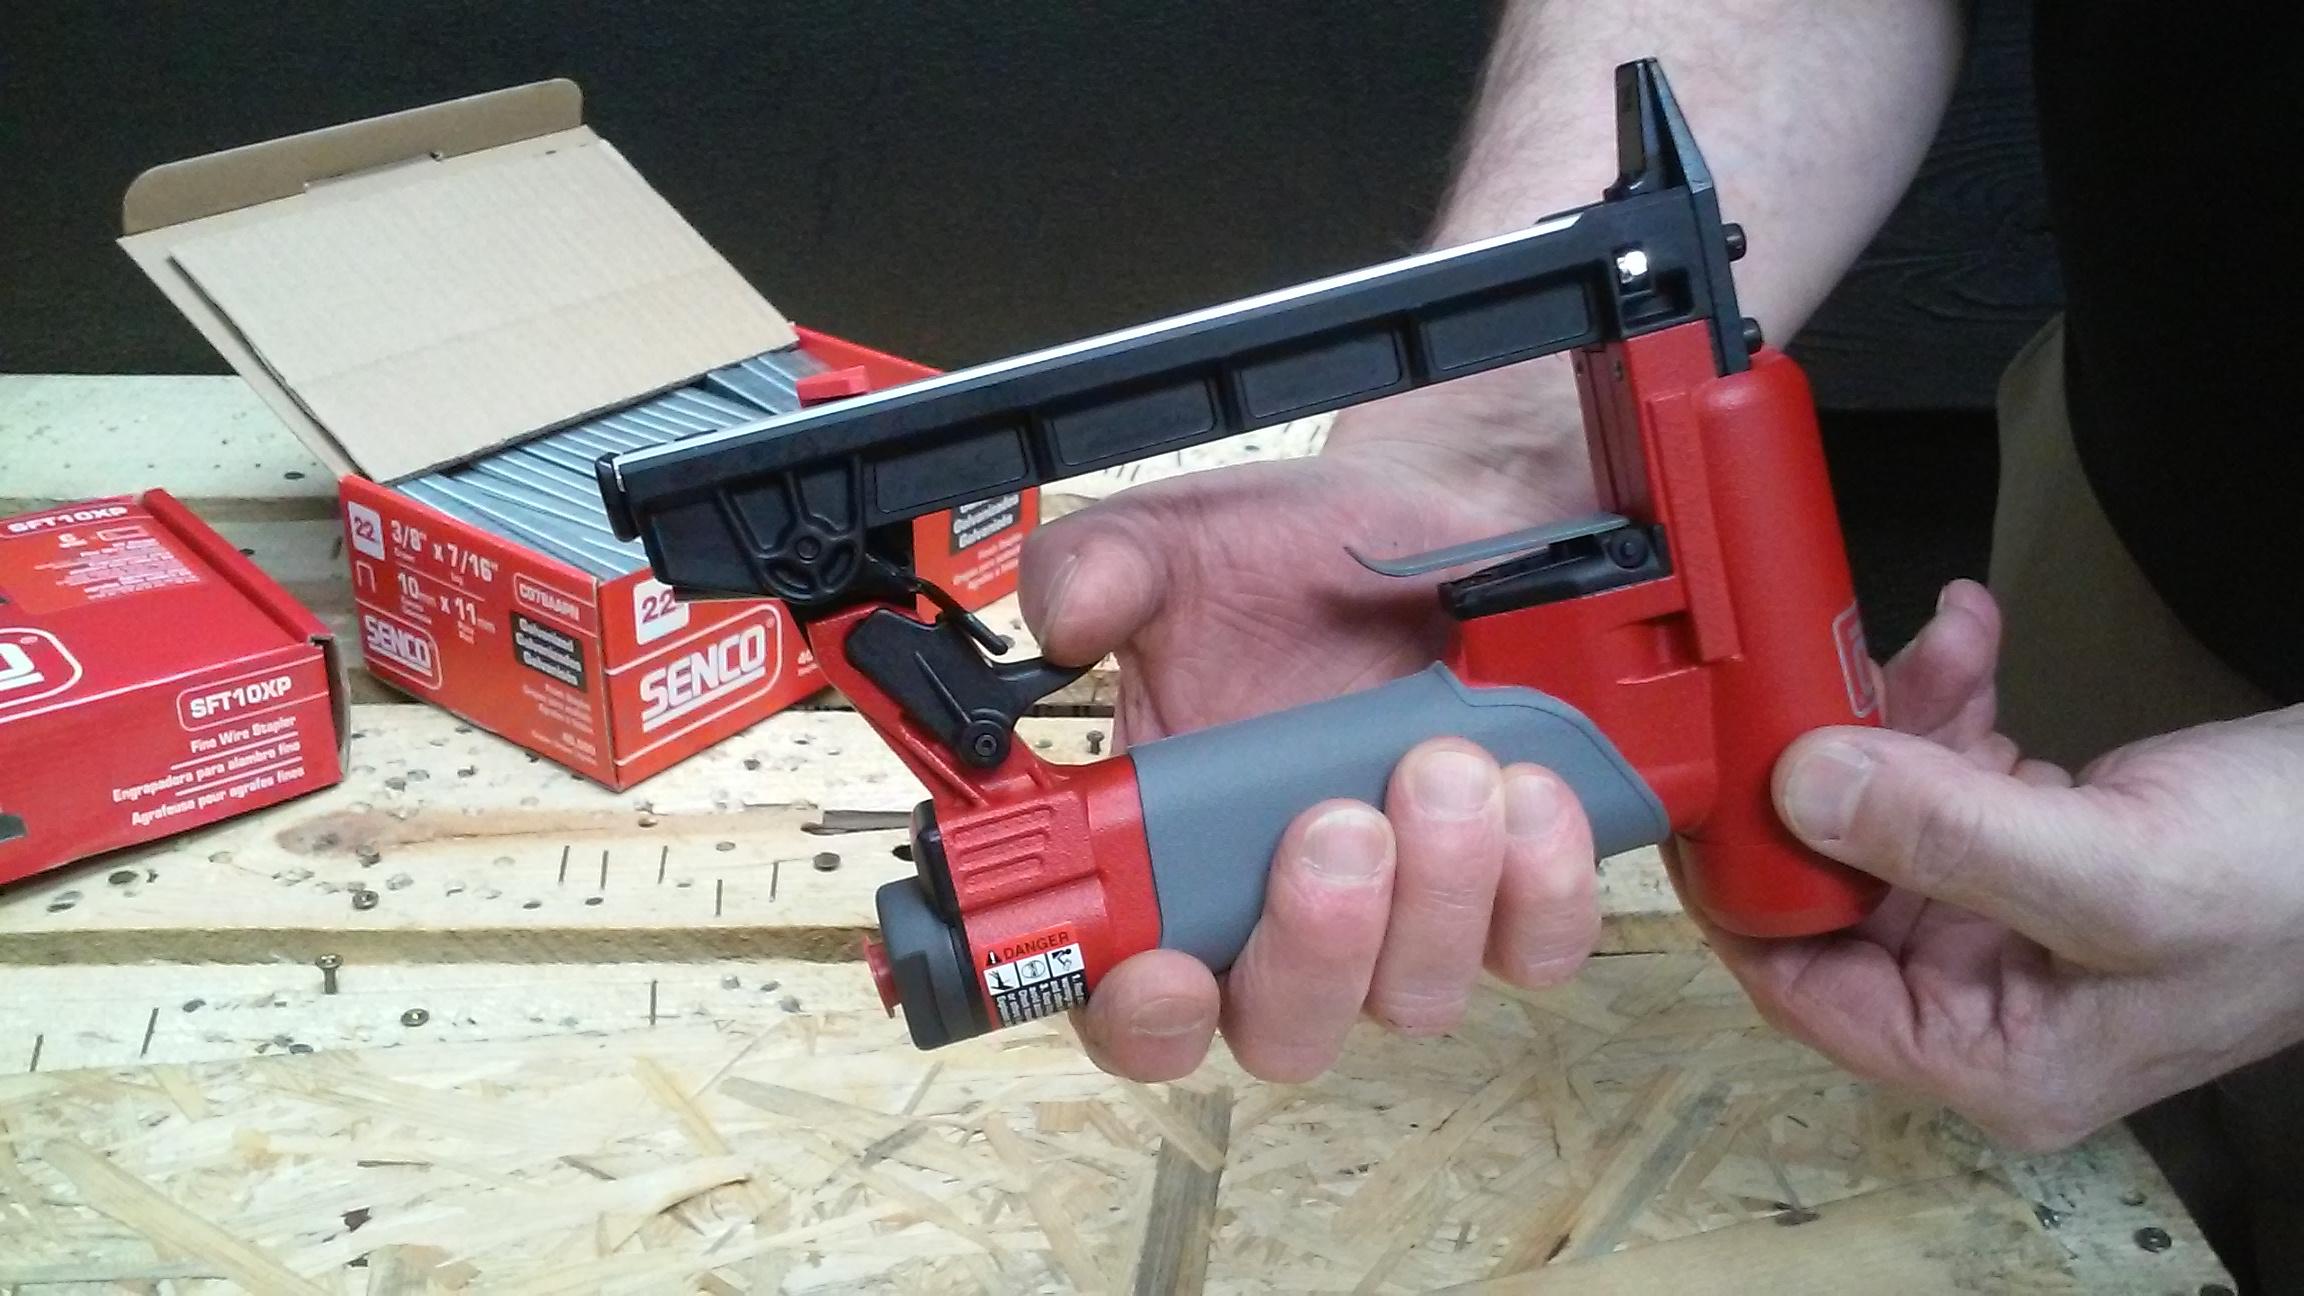 How to load bottom feed staple gun step 1